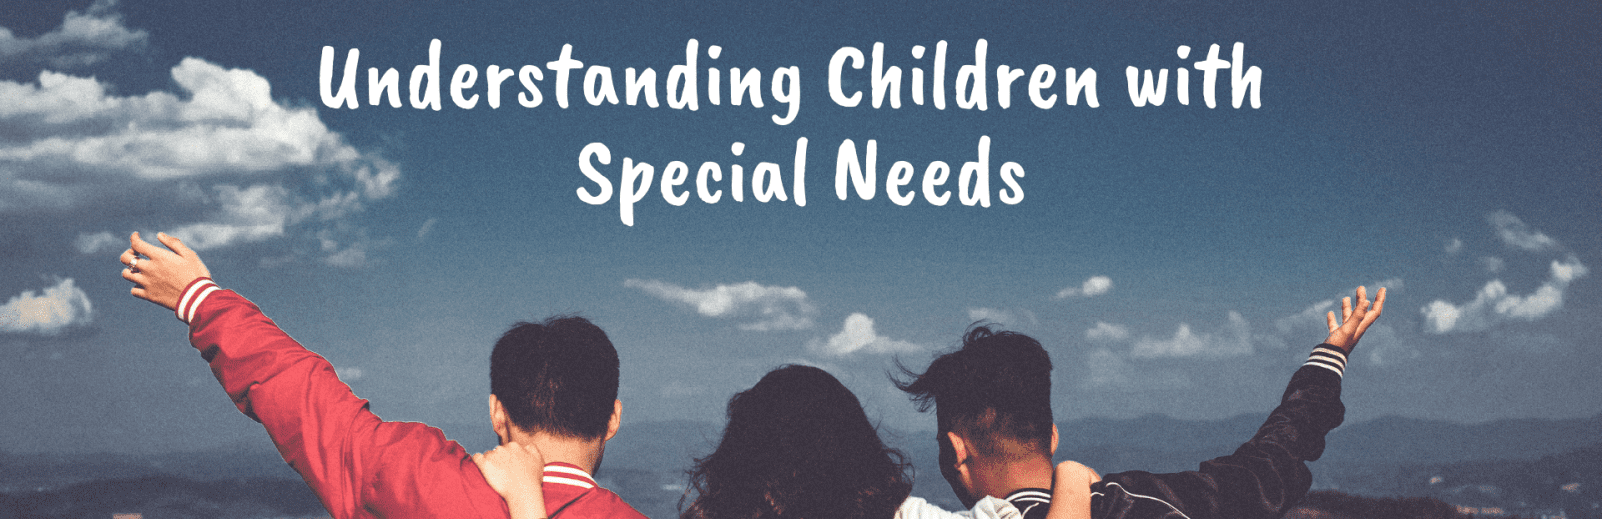 ACCIHS_Understanding Children With Special Needs_Header